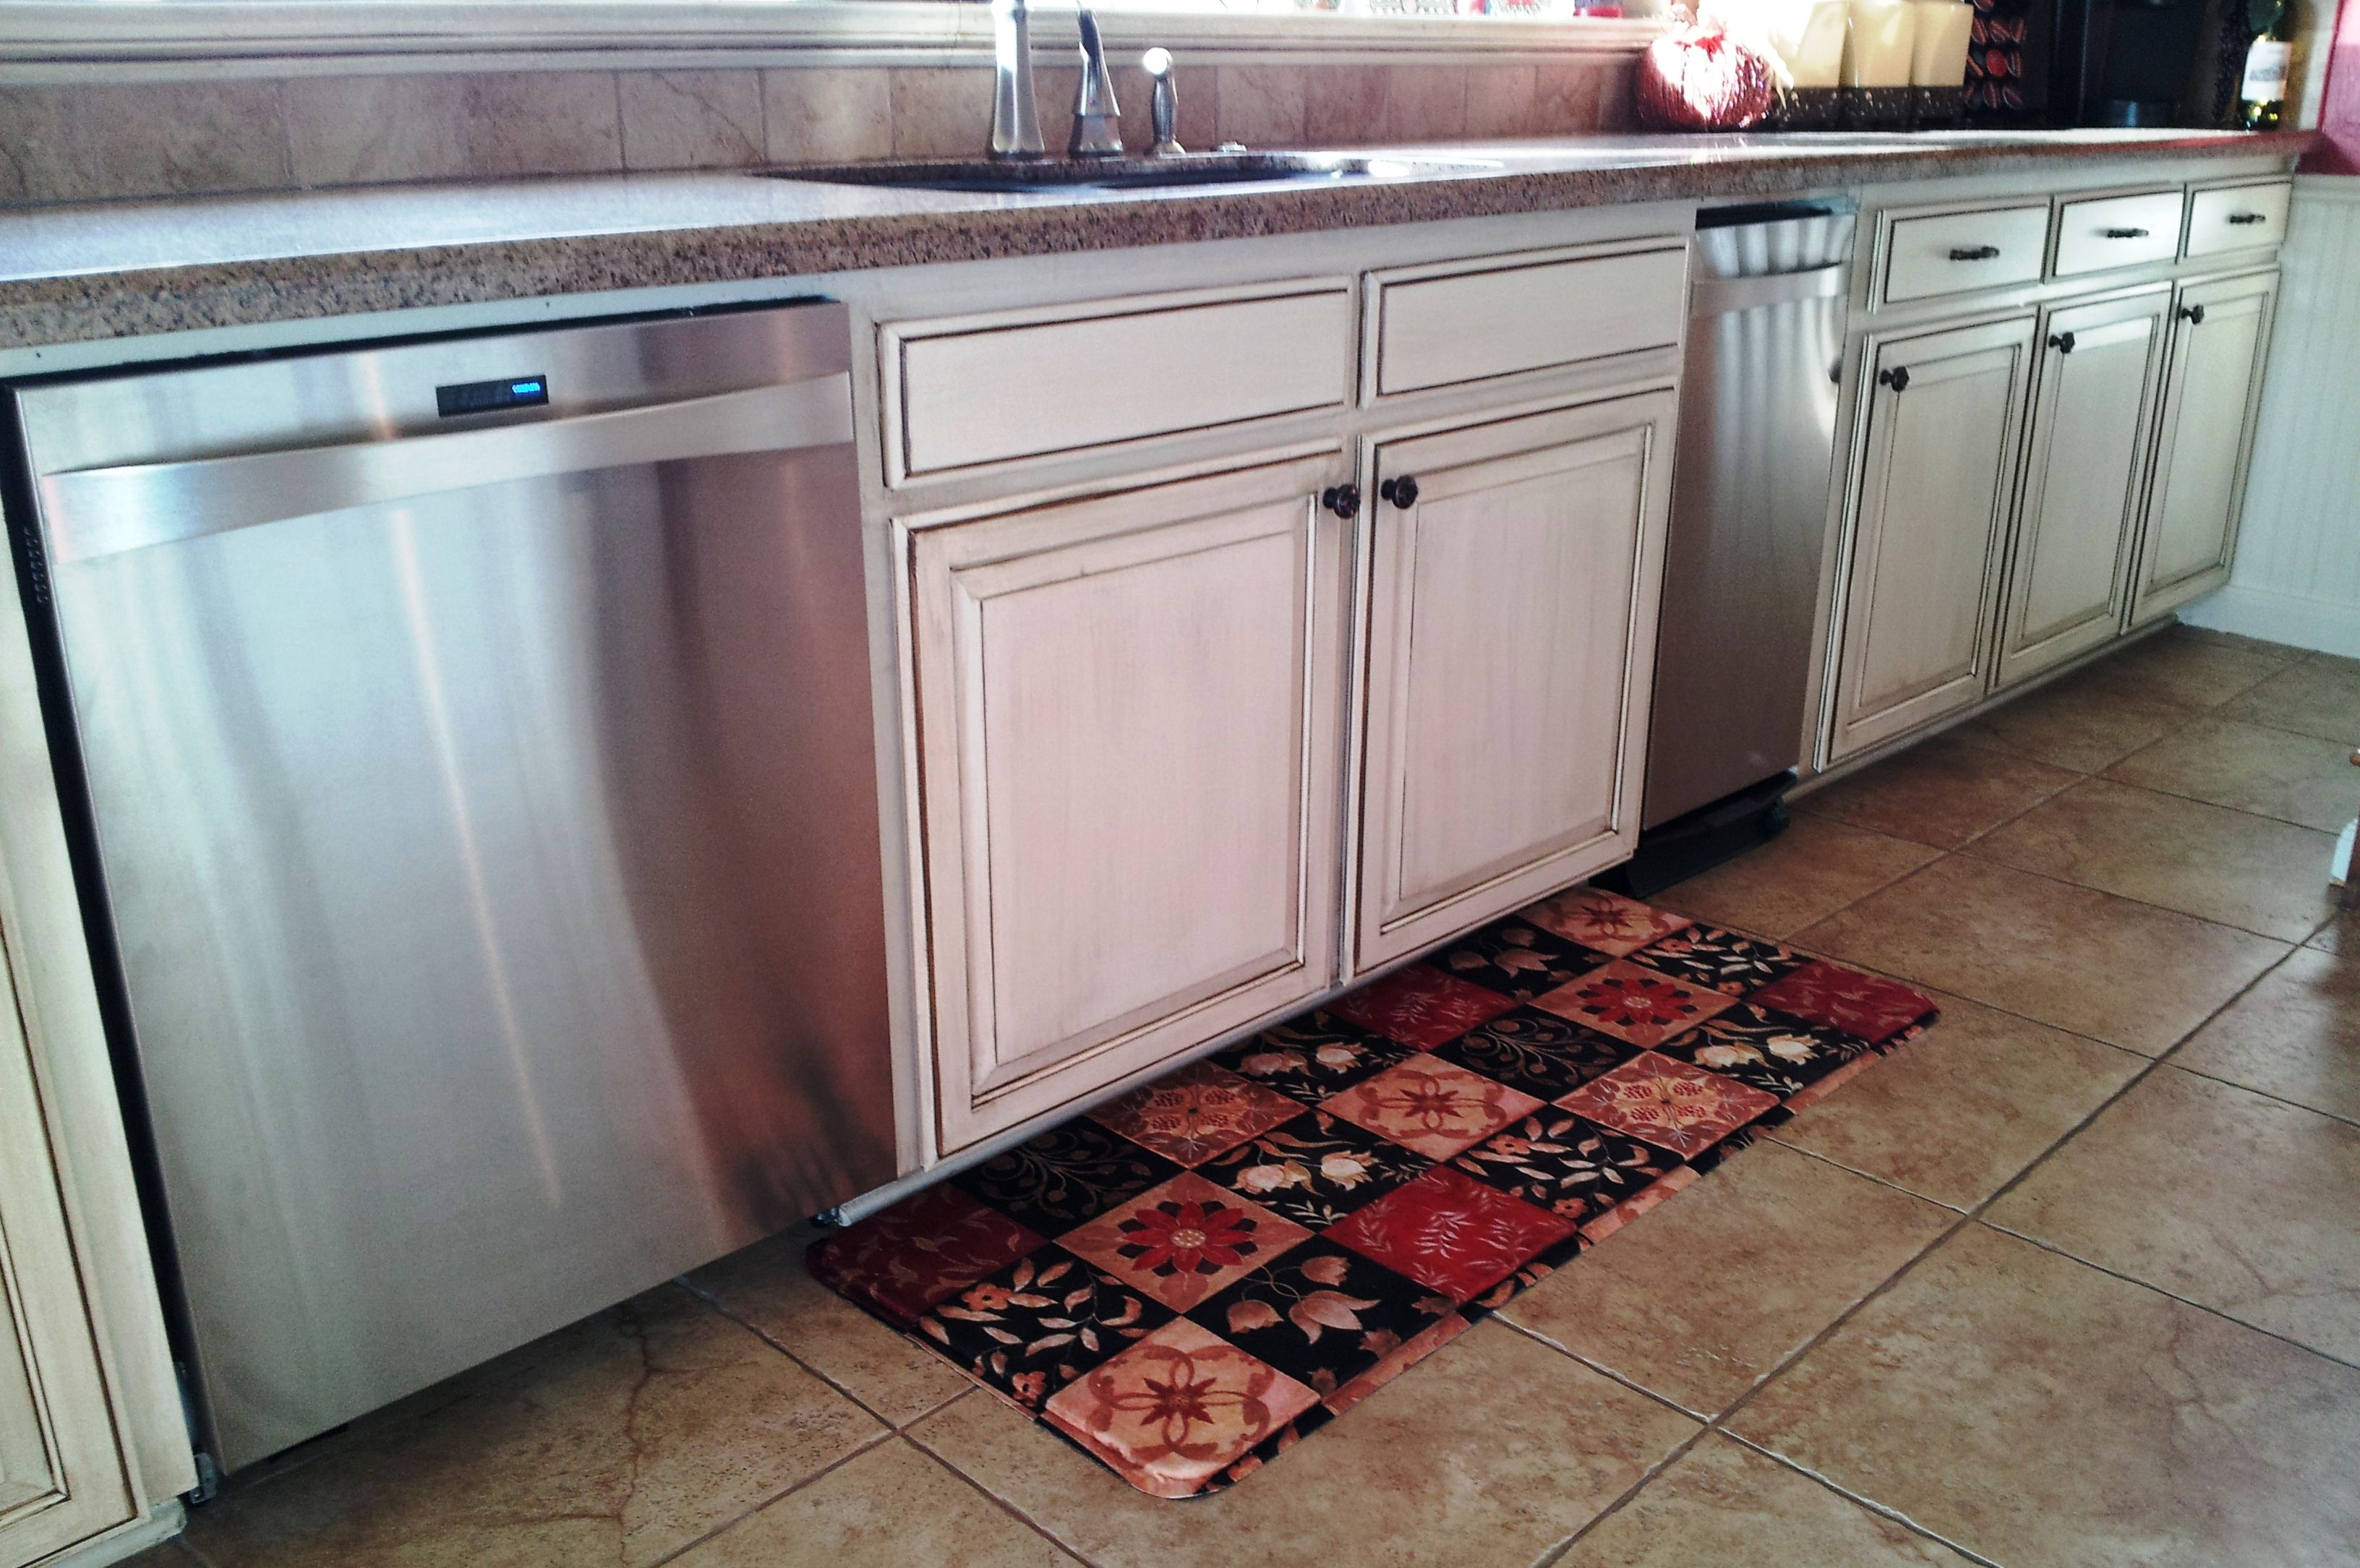 kitchen trash compactor modern sink lower cabinets with new kenmore elite dishwasher and